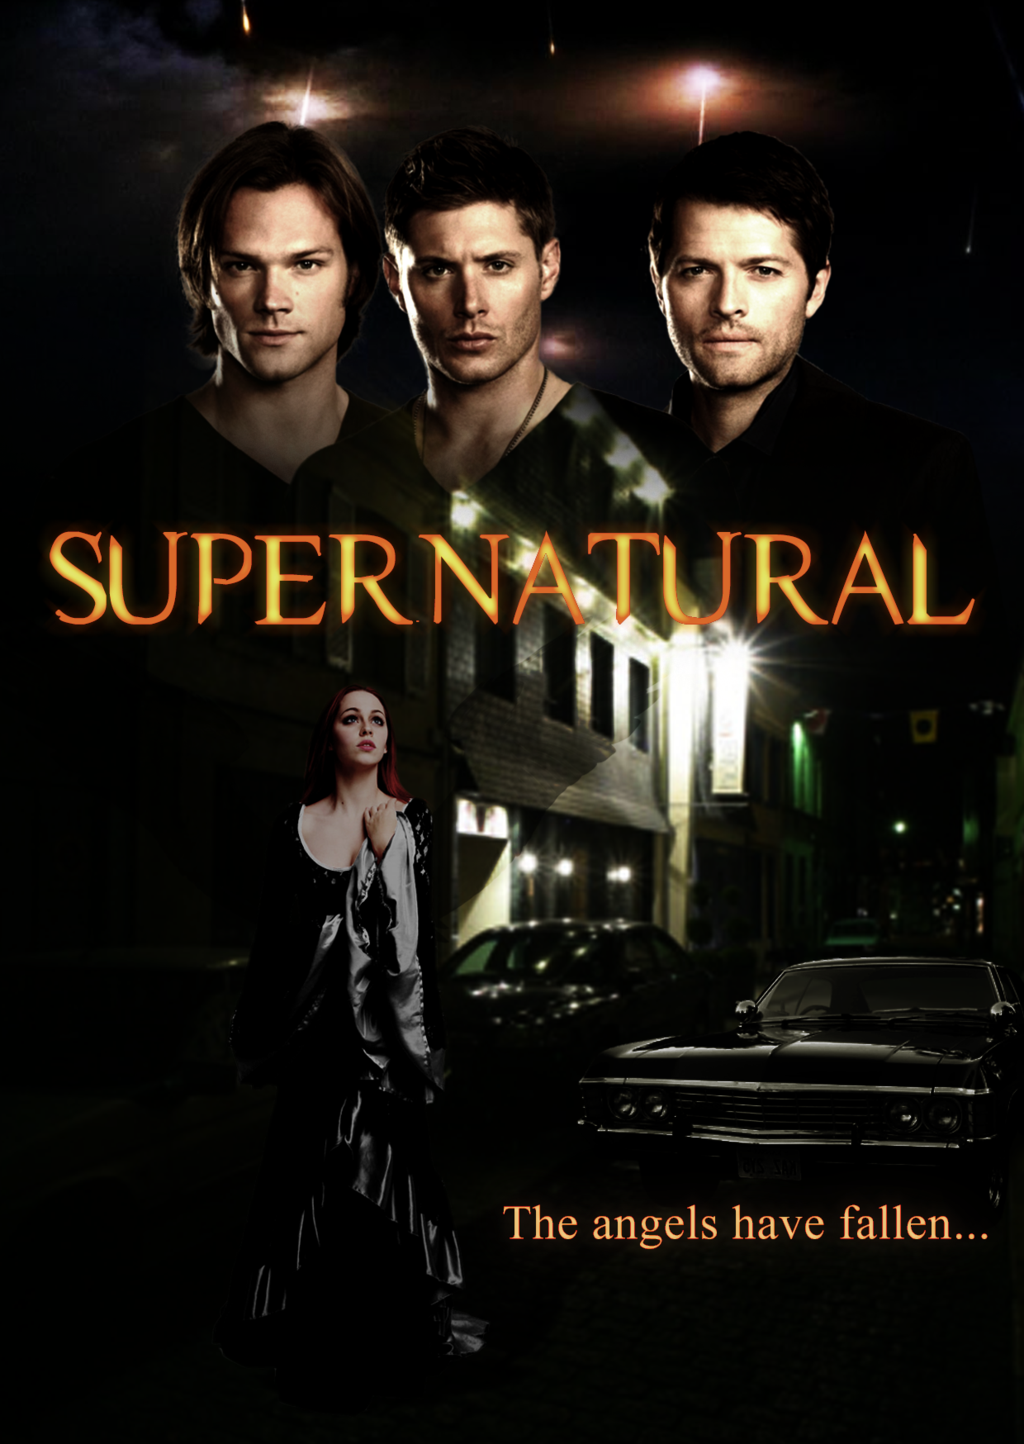 Supernatural season 9 photos supernatural season 9 fan poster by supernatural season 9 photos supernatural season 9 fan poster by iclethea on deviantart voltagebd Image collections